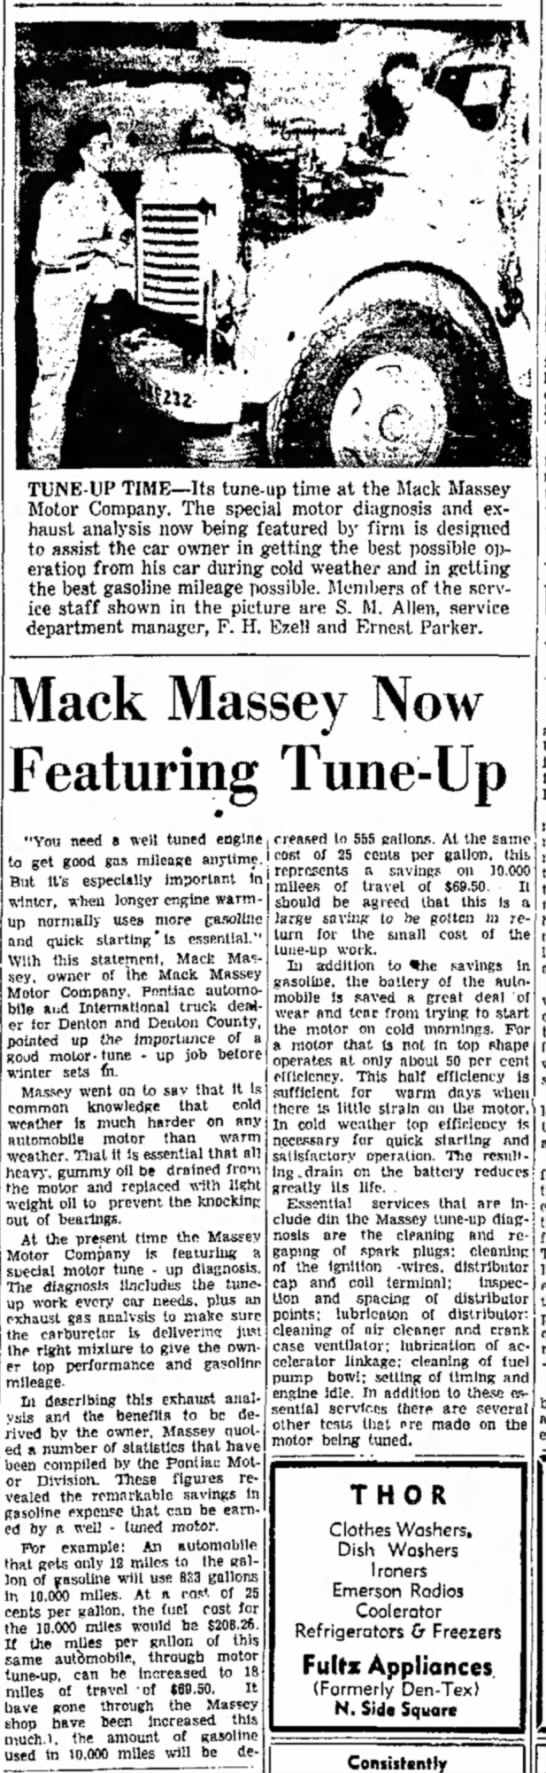 Mach Massey Motors 1948 - TUNE-UP TIME—Its tune-up time at the Mack...